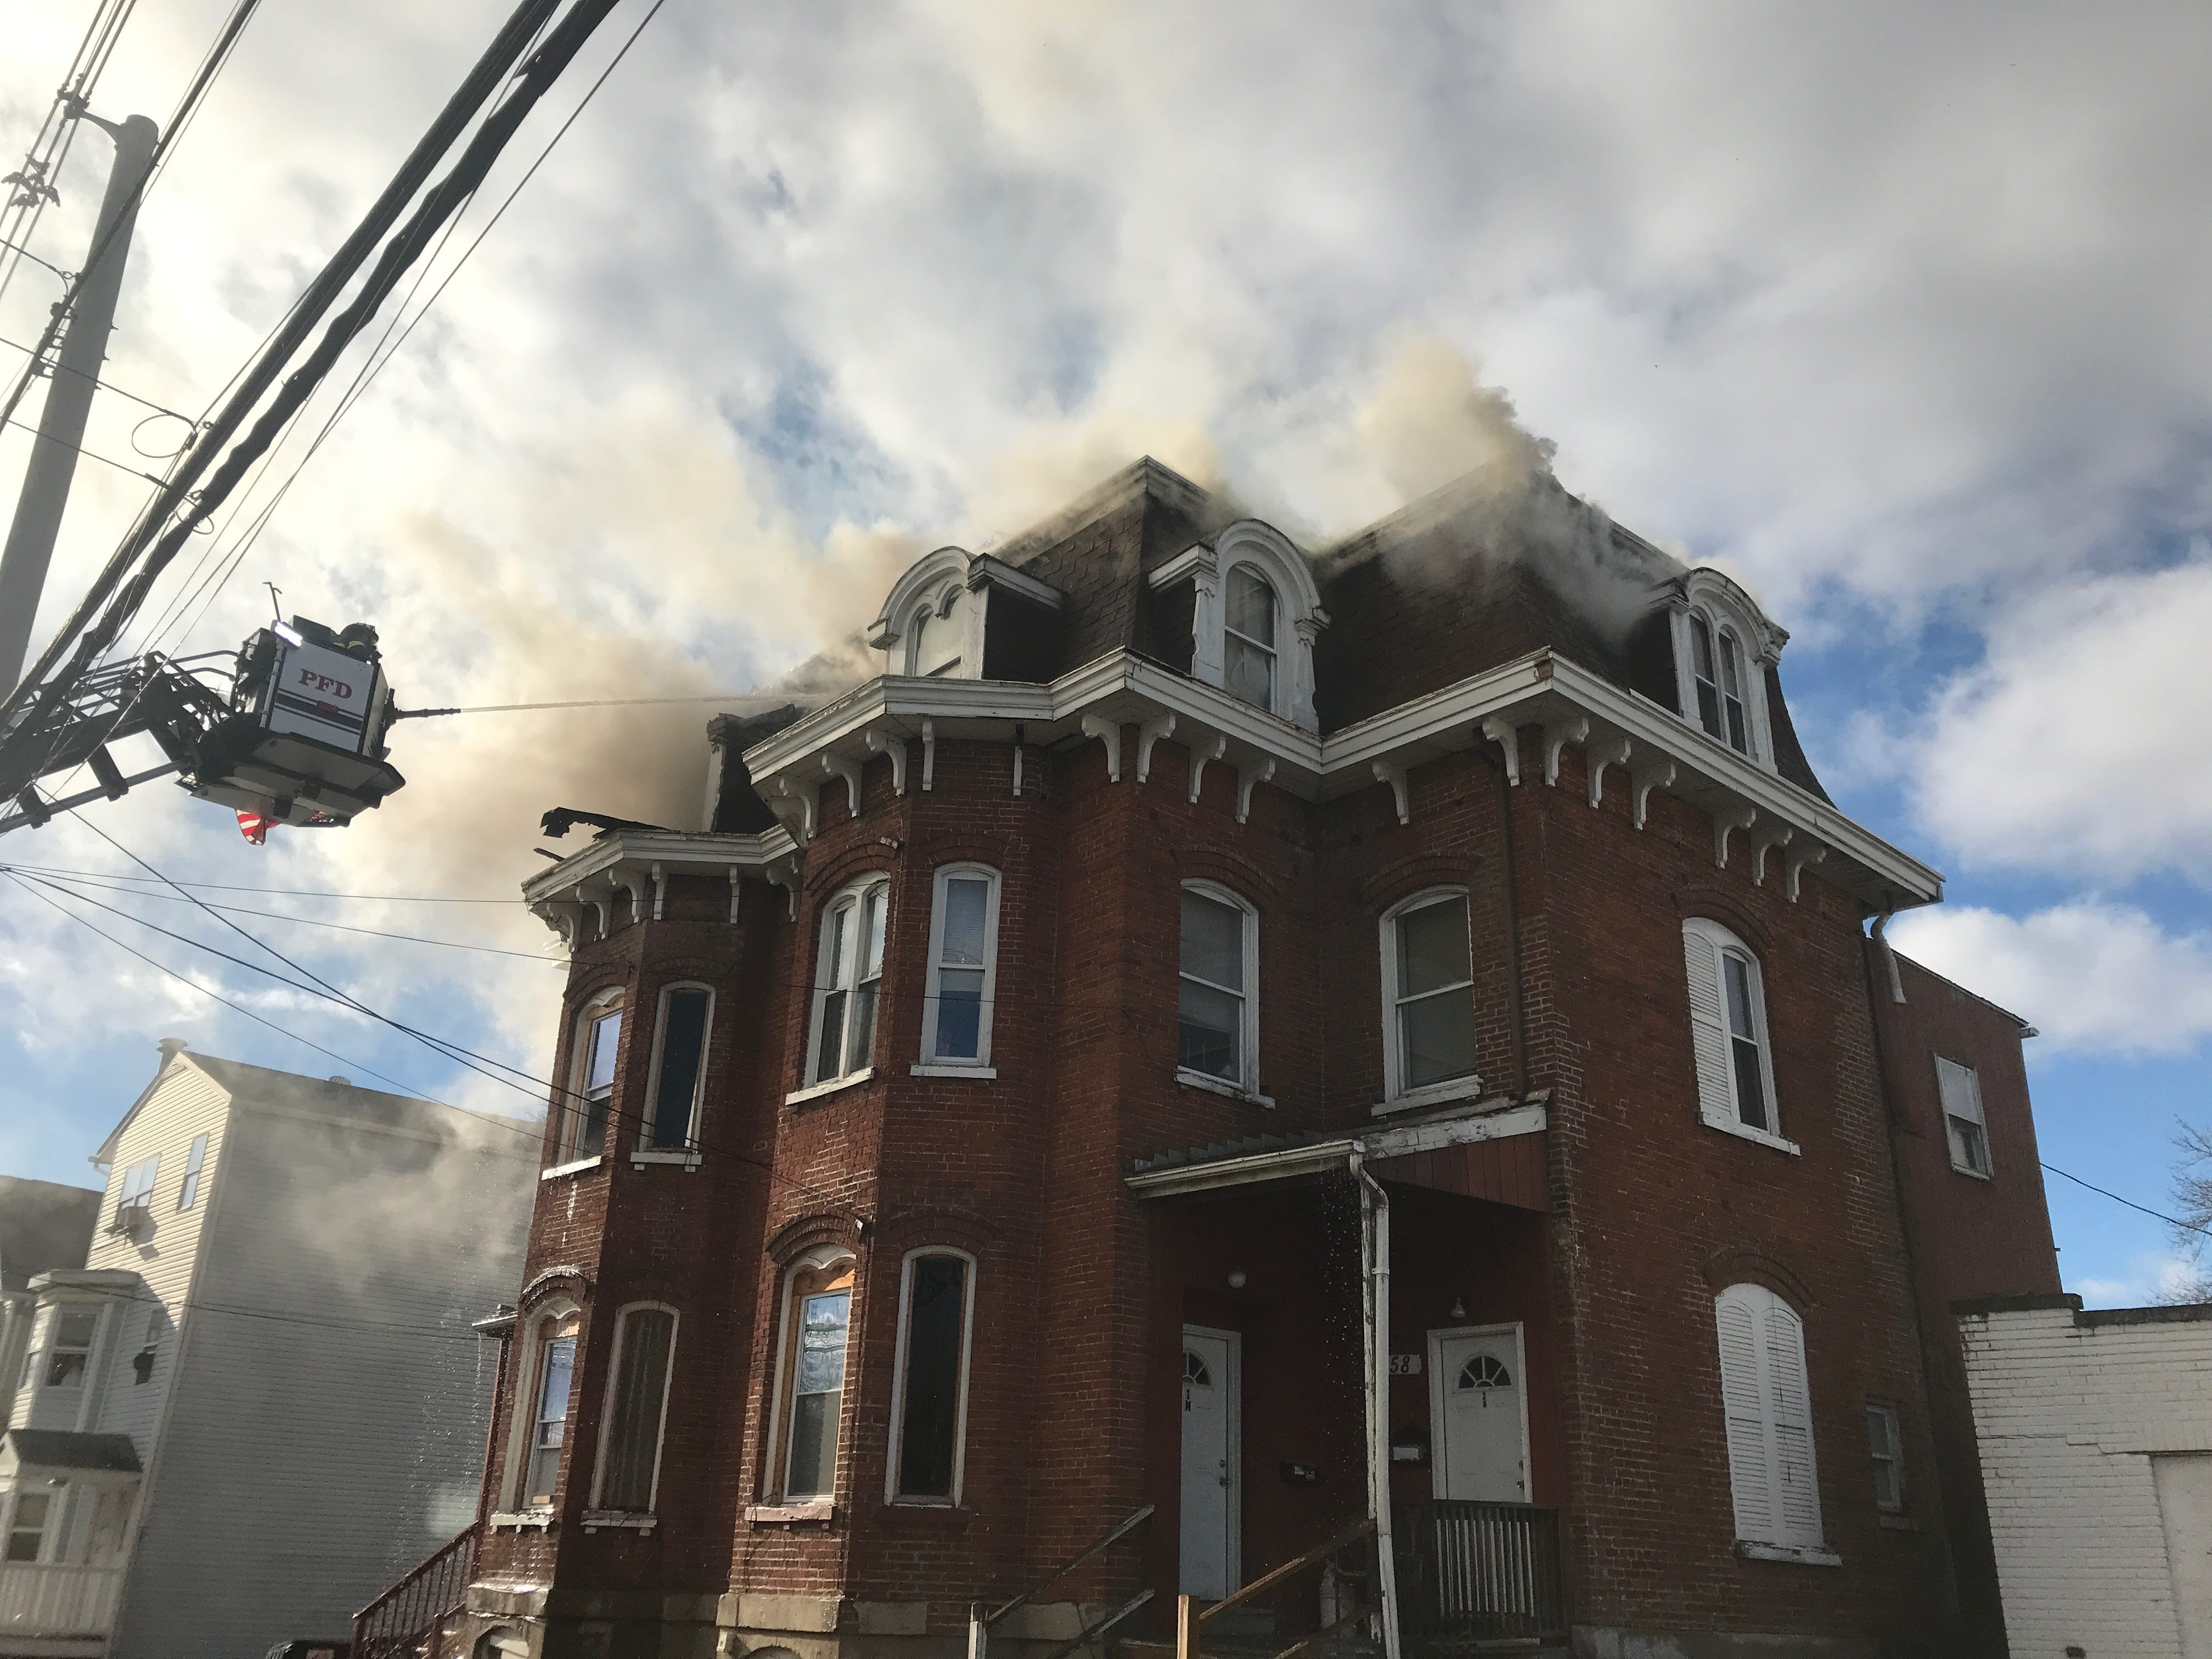 Multiple agencies responded to a structure fire on Smith Street in the City of Poughkeepsie Friday.